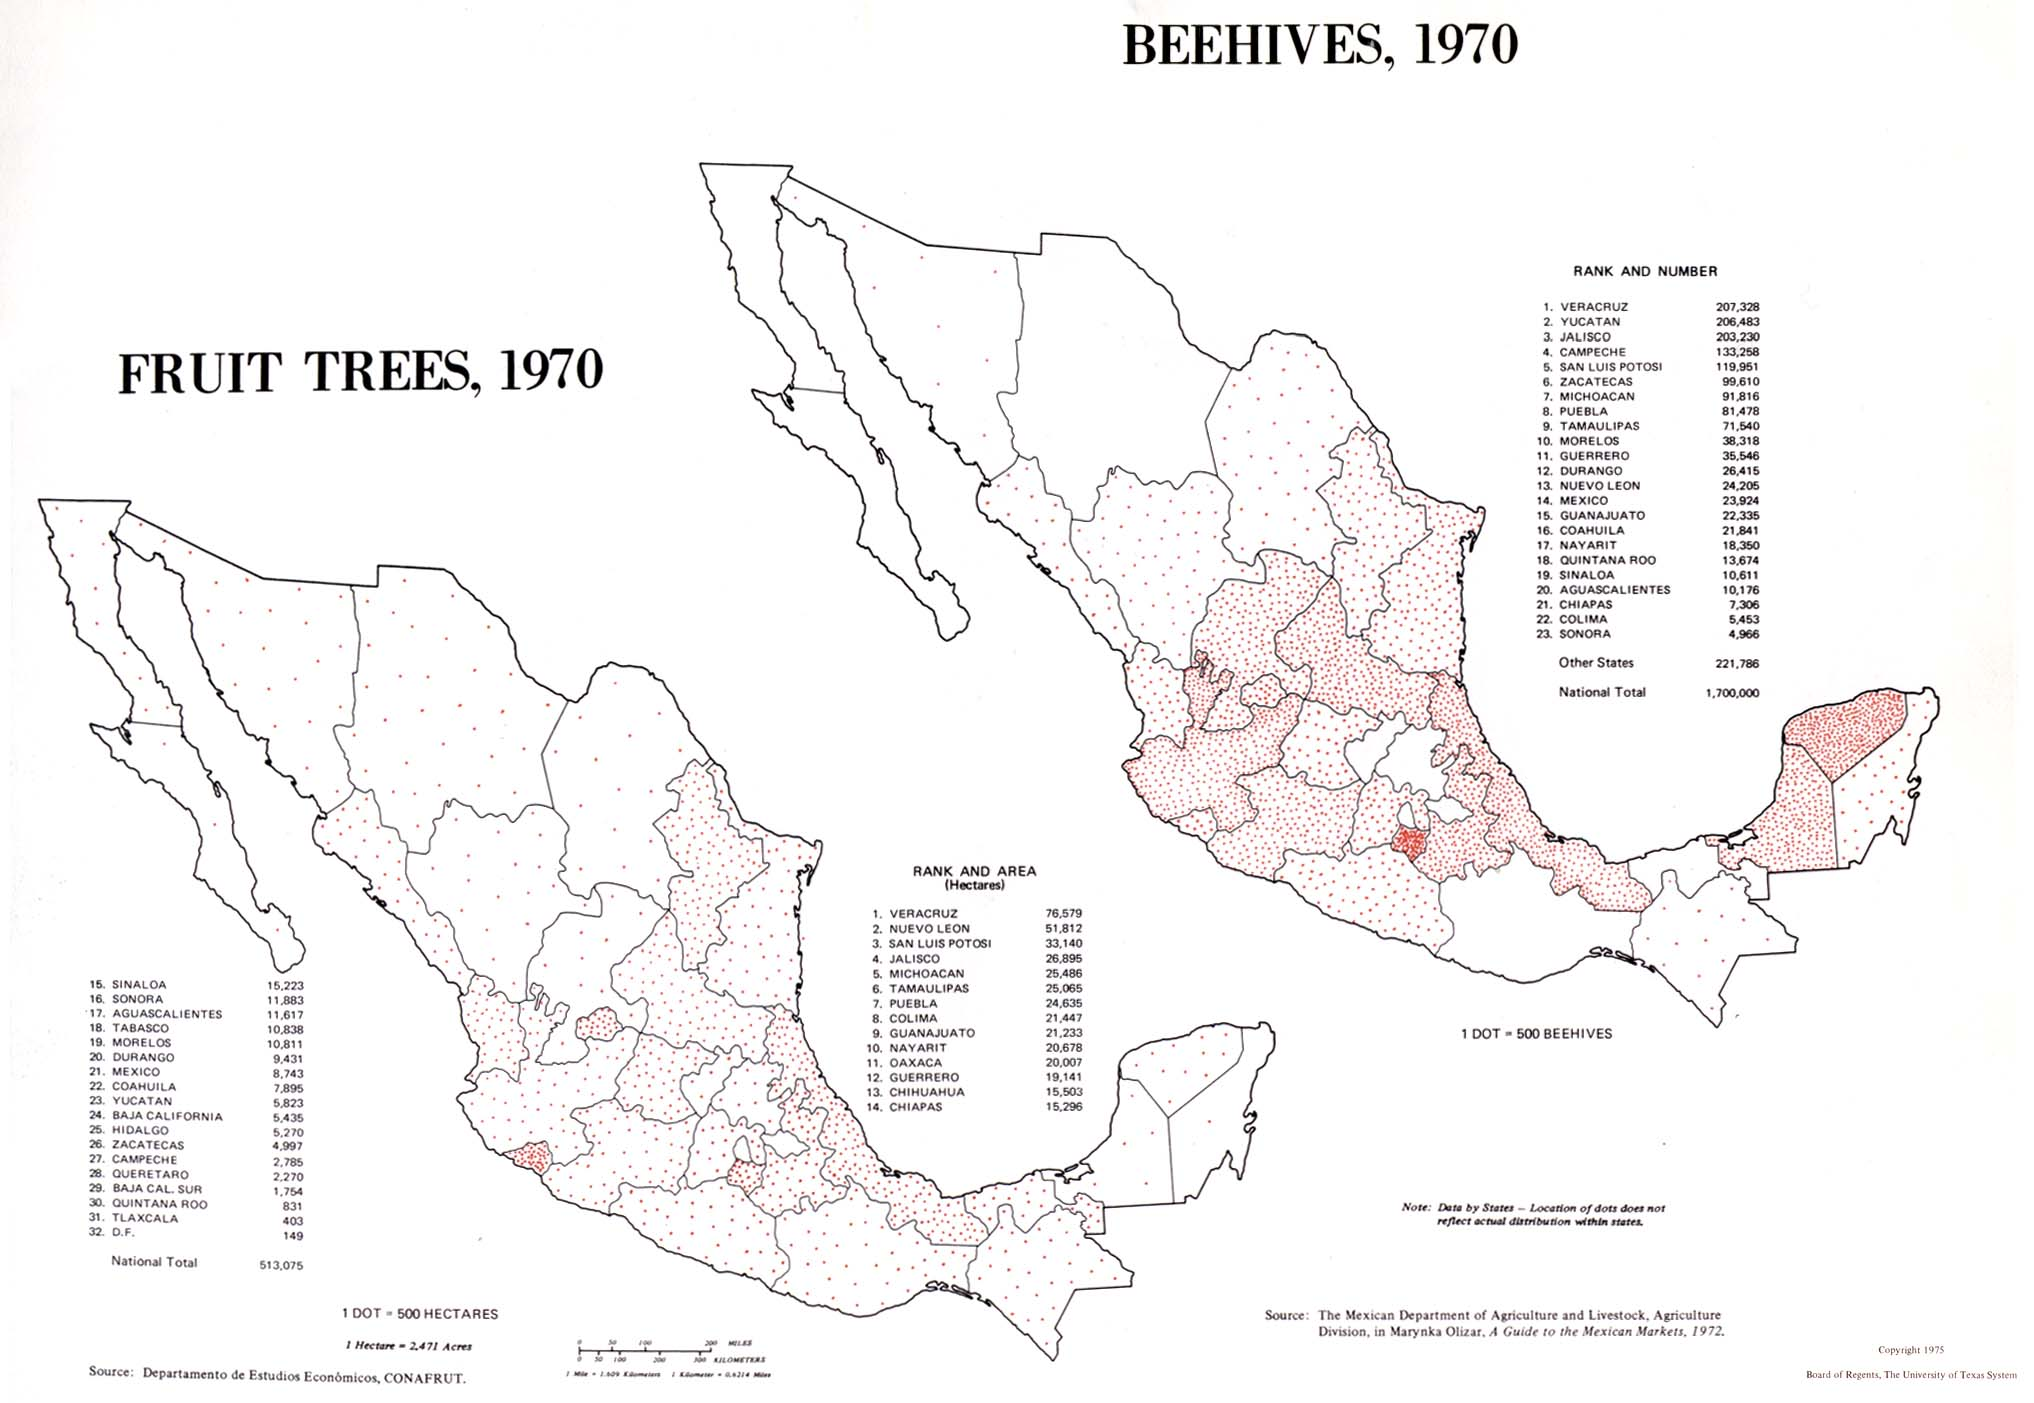 Fruit Trees Production Map, 1970, Bee Hives, Mexico